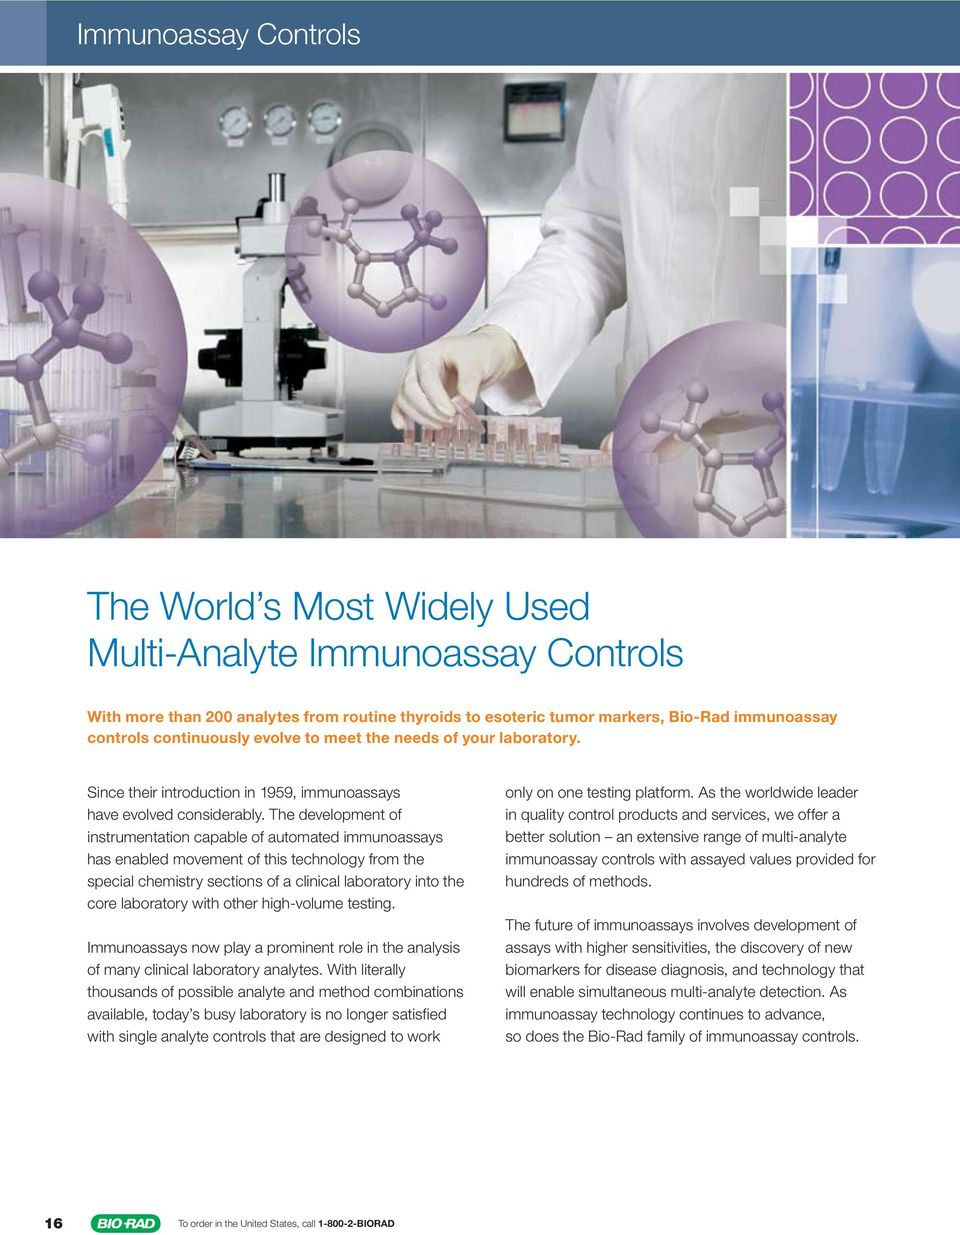 The development of instrumentation capable of automated immunoassays has enabled movement of this technology from the special chemistry sections of a clinical laboratory into the core laboratory with